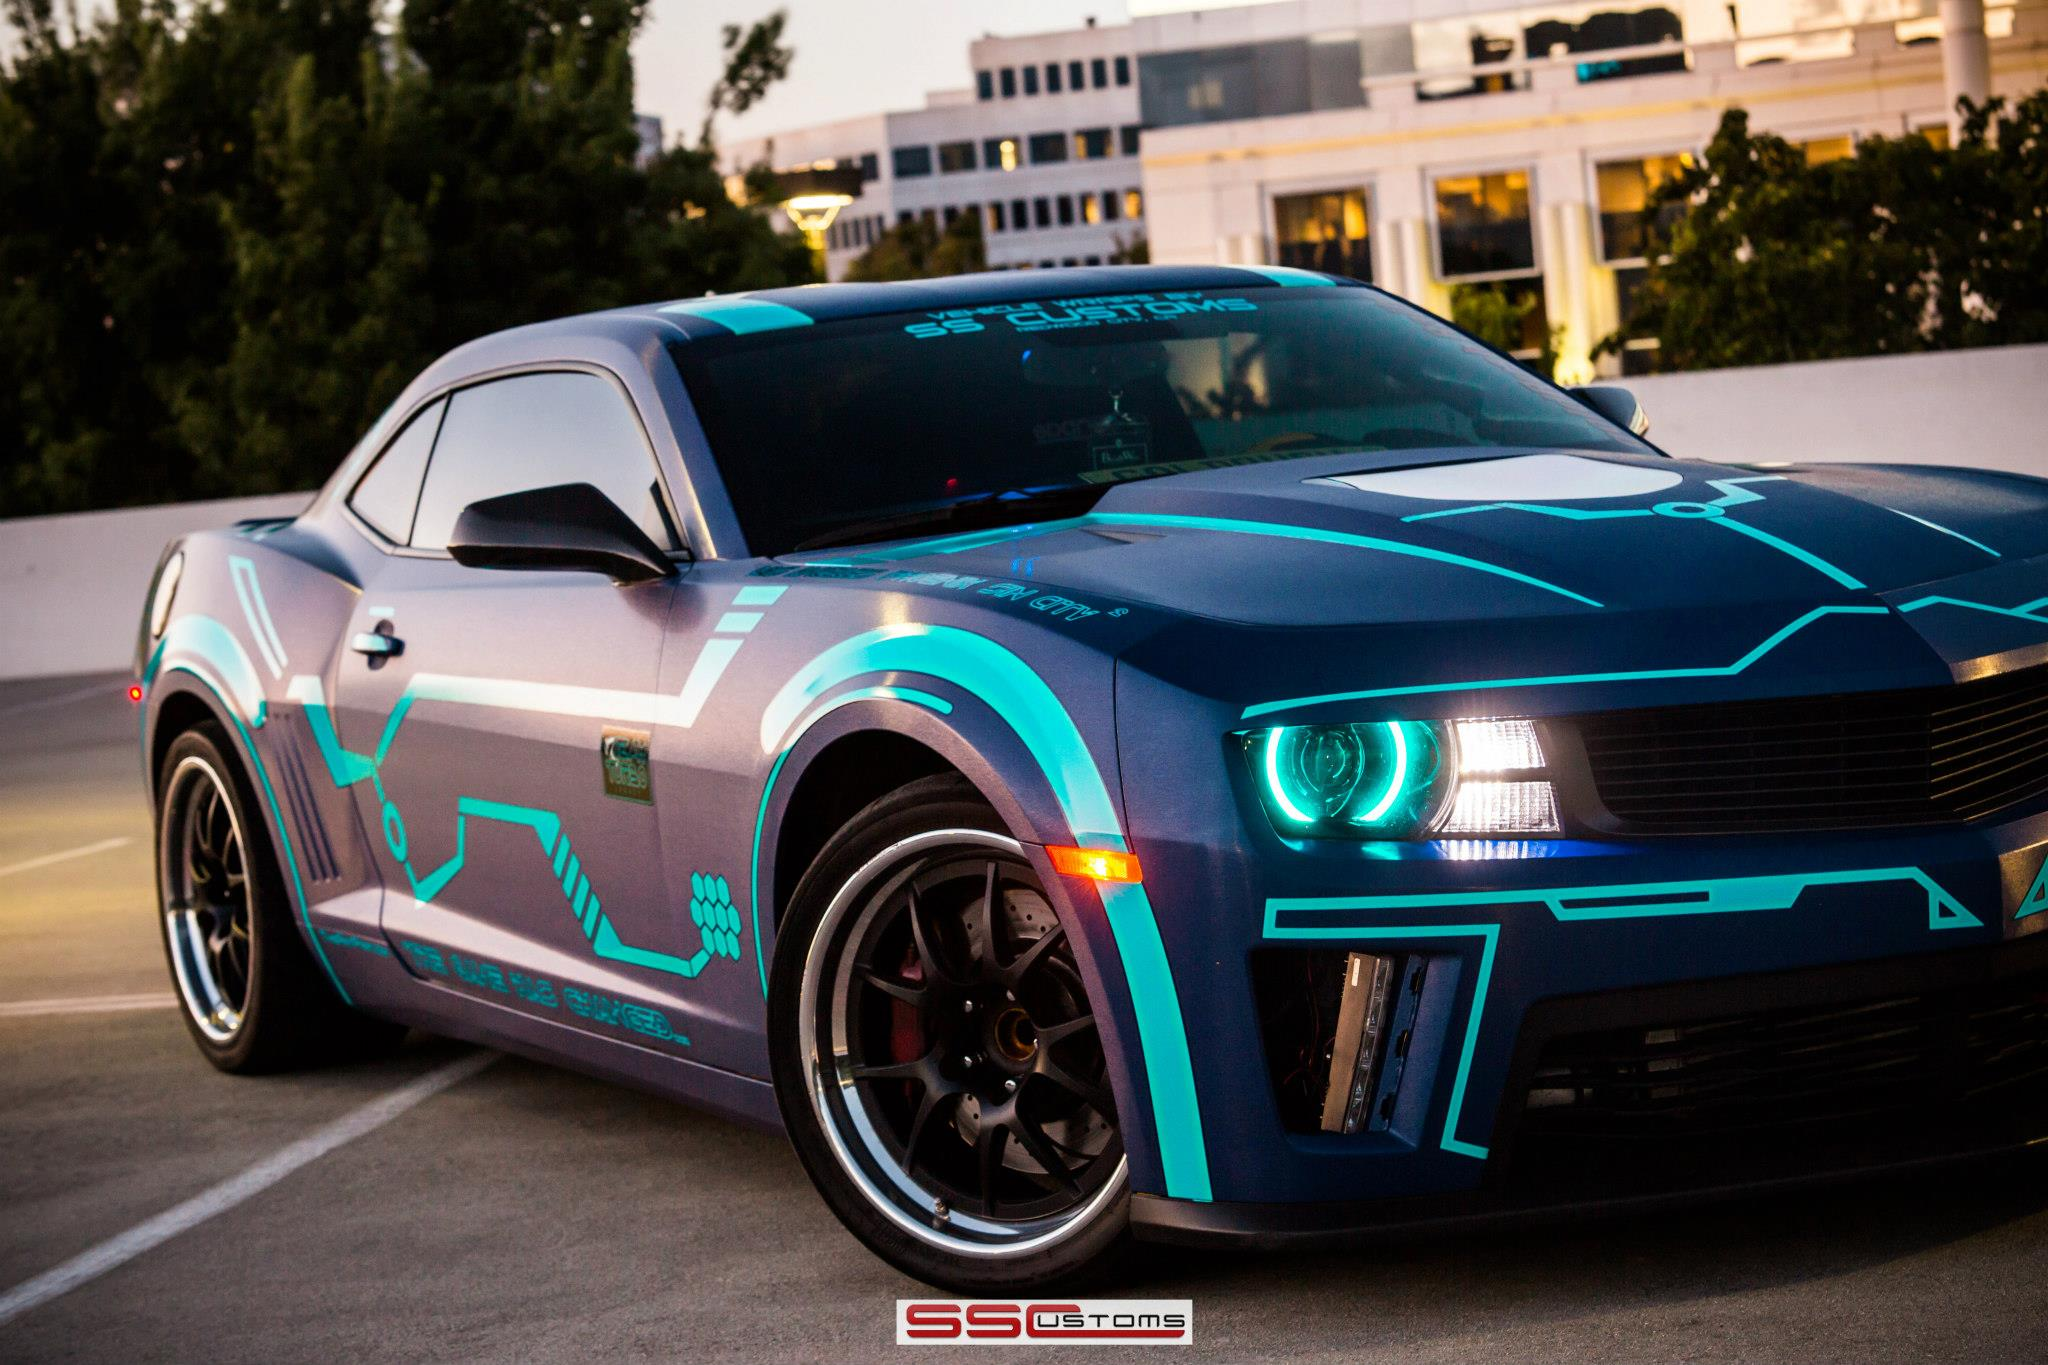 Audi Sports Car Wallpaper Ss Customs Chevrolet Camaro Picture 83668